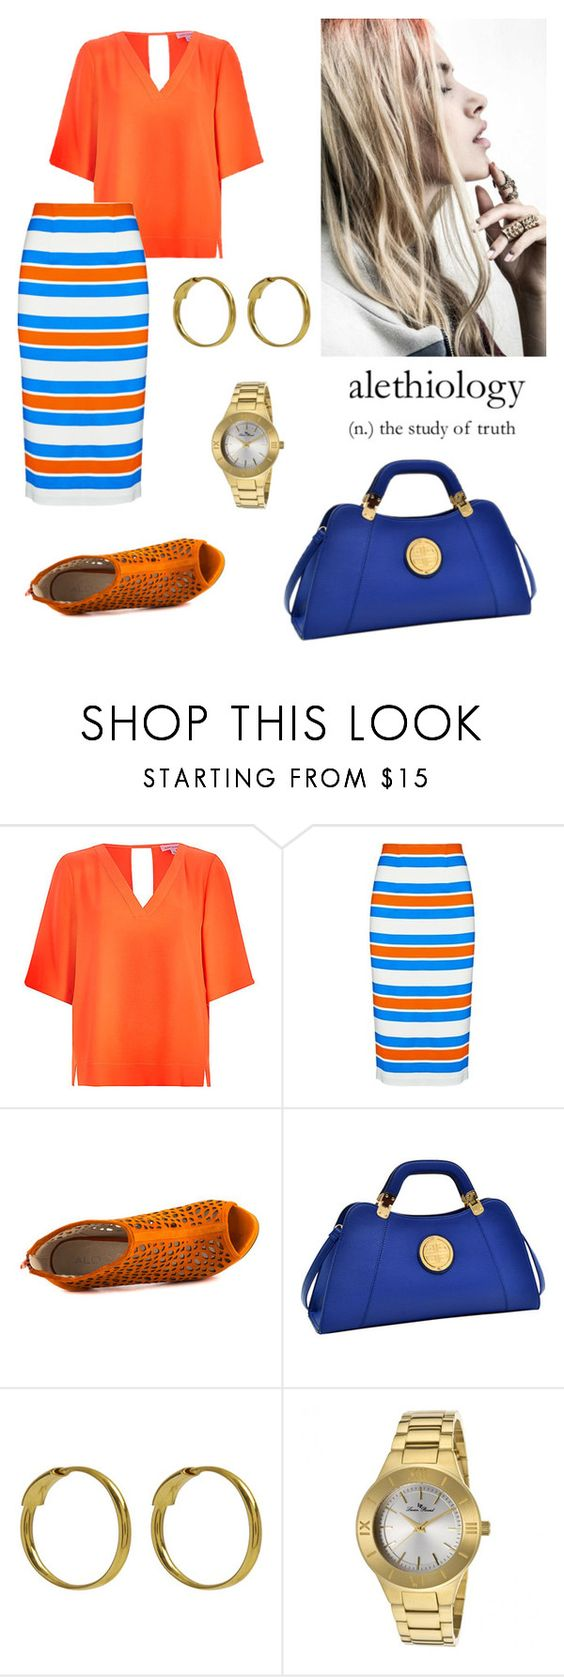 """""""Color. Calor."""" by schenonek ❤ liked on Polyvore featuring Tanya Taylor, ALDO, Dasein, Maria Black, Lucien Piccard, women's clothing, women's fashion, women, female and woman"""